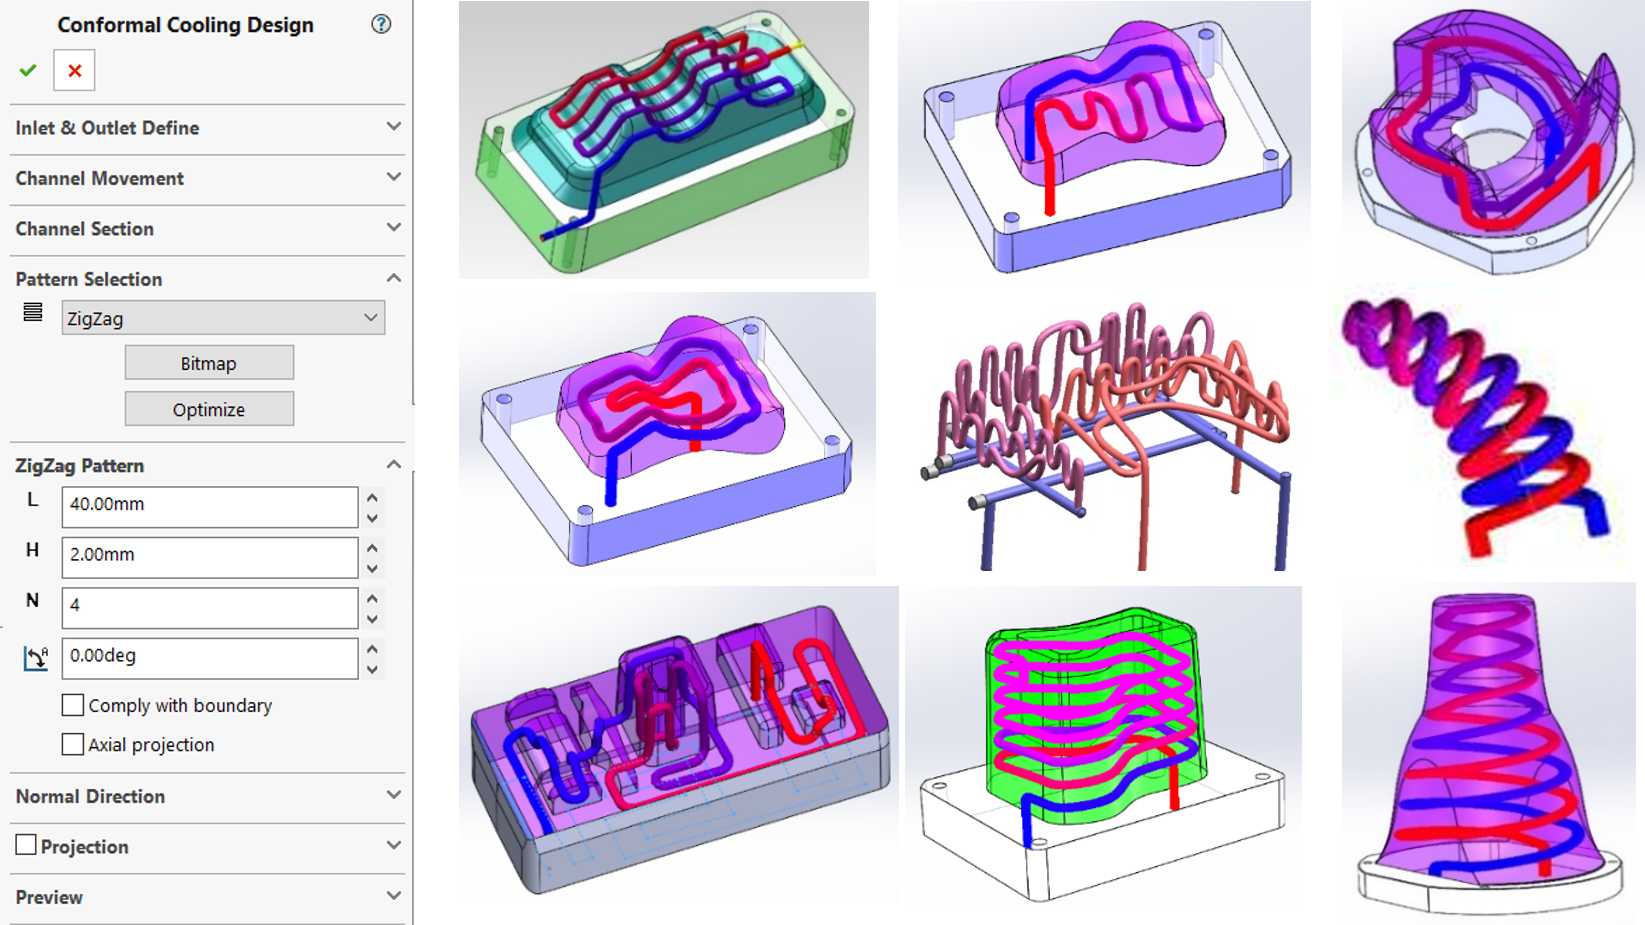 The automated conformal cooling design module provides 10 design patterns and 2 projection methods to deal with diverse moulding profiles and cooling configurations.